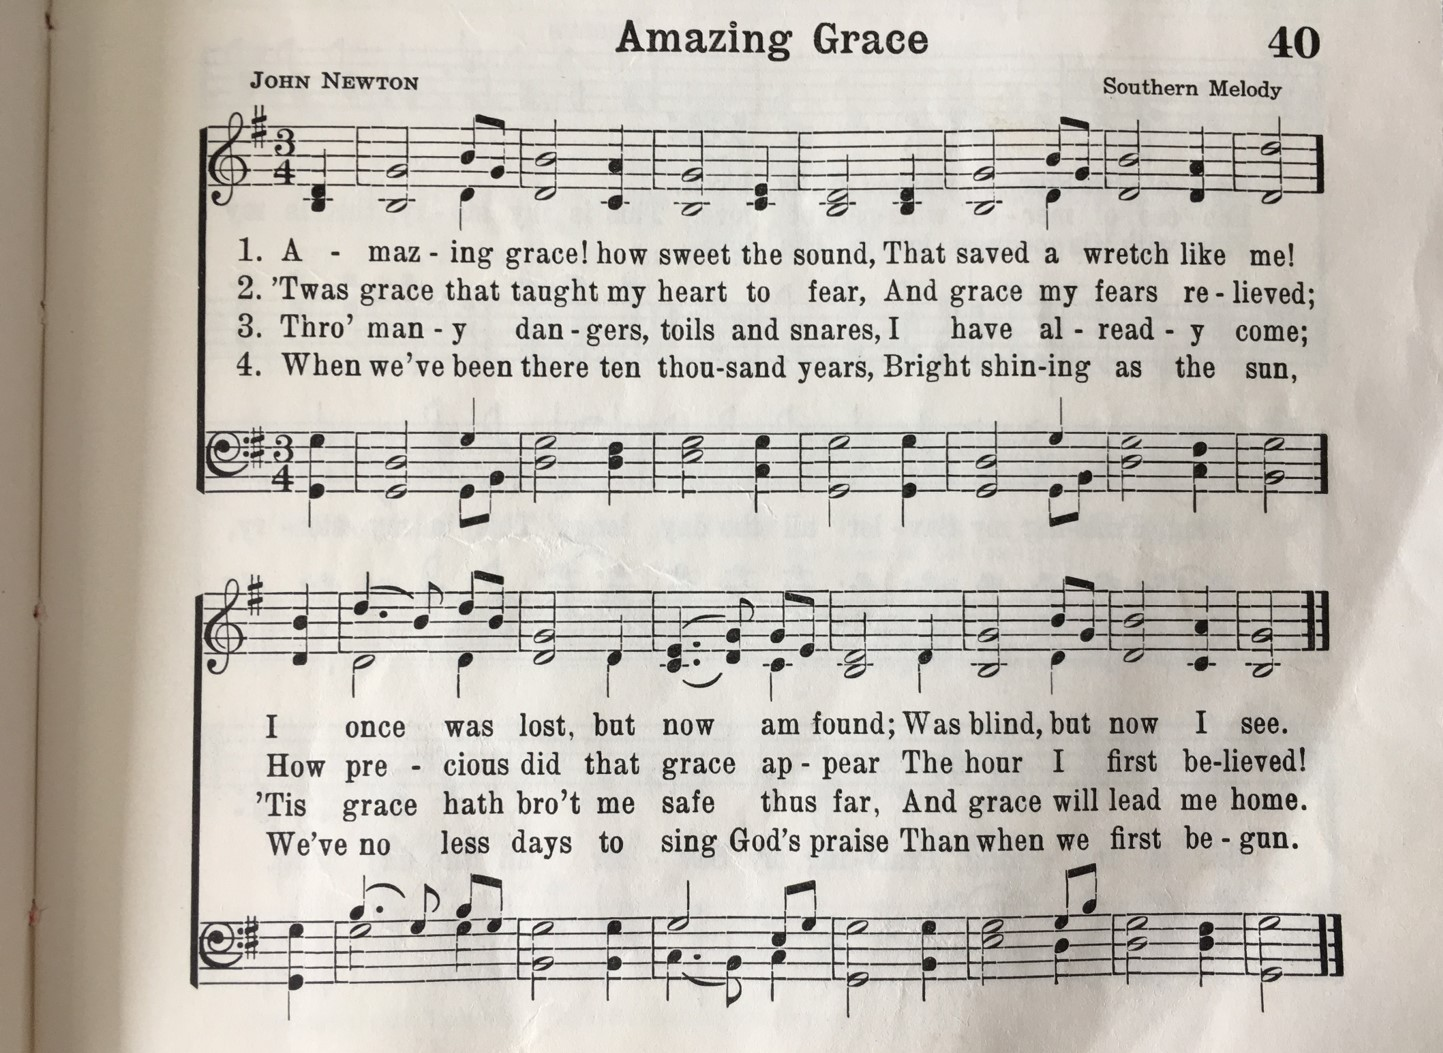 the metaphors in amazing grace by john newton Only god's amazing grace could and would take a rude, profane, slave-trading sailor and transform him into a child of god newton never ceased to stand in awe of god's work in his life new directions - john newton's conversion though newton continued in his profession of sailing and slave-trading for a time, his life was transformed.